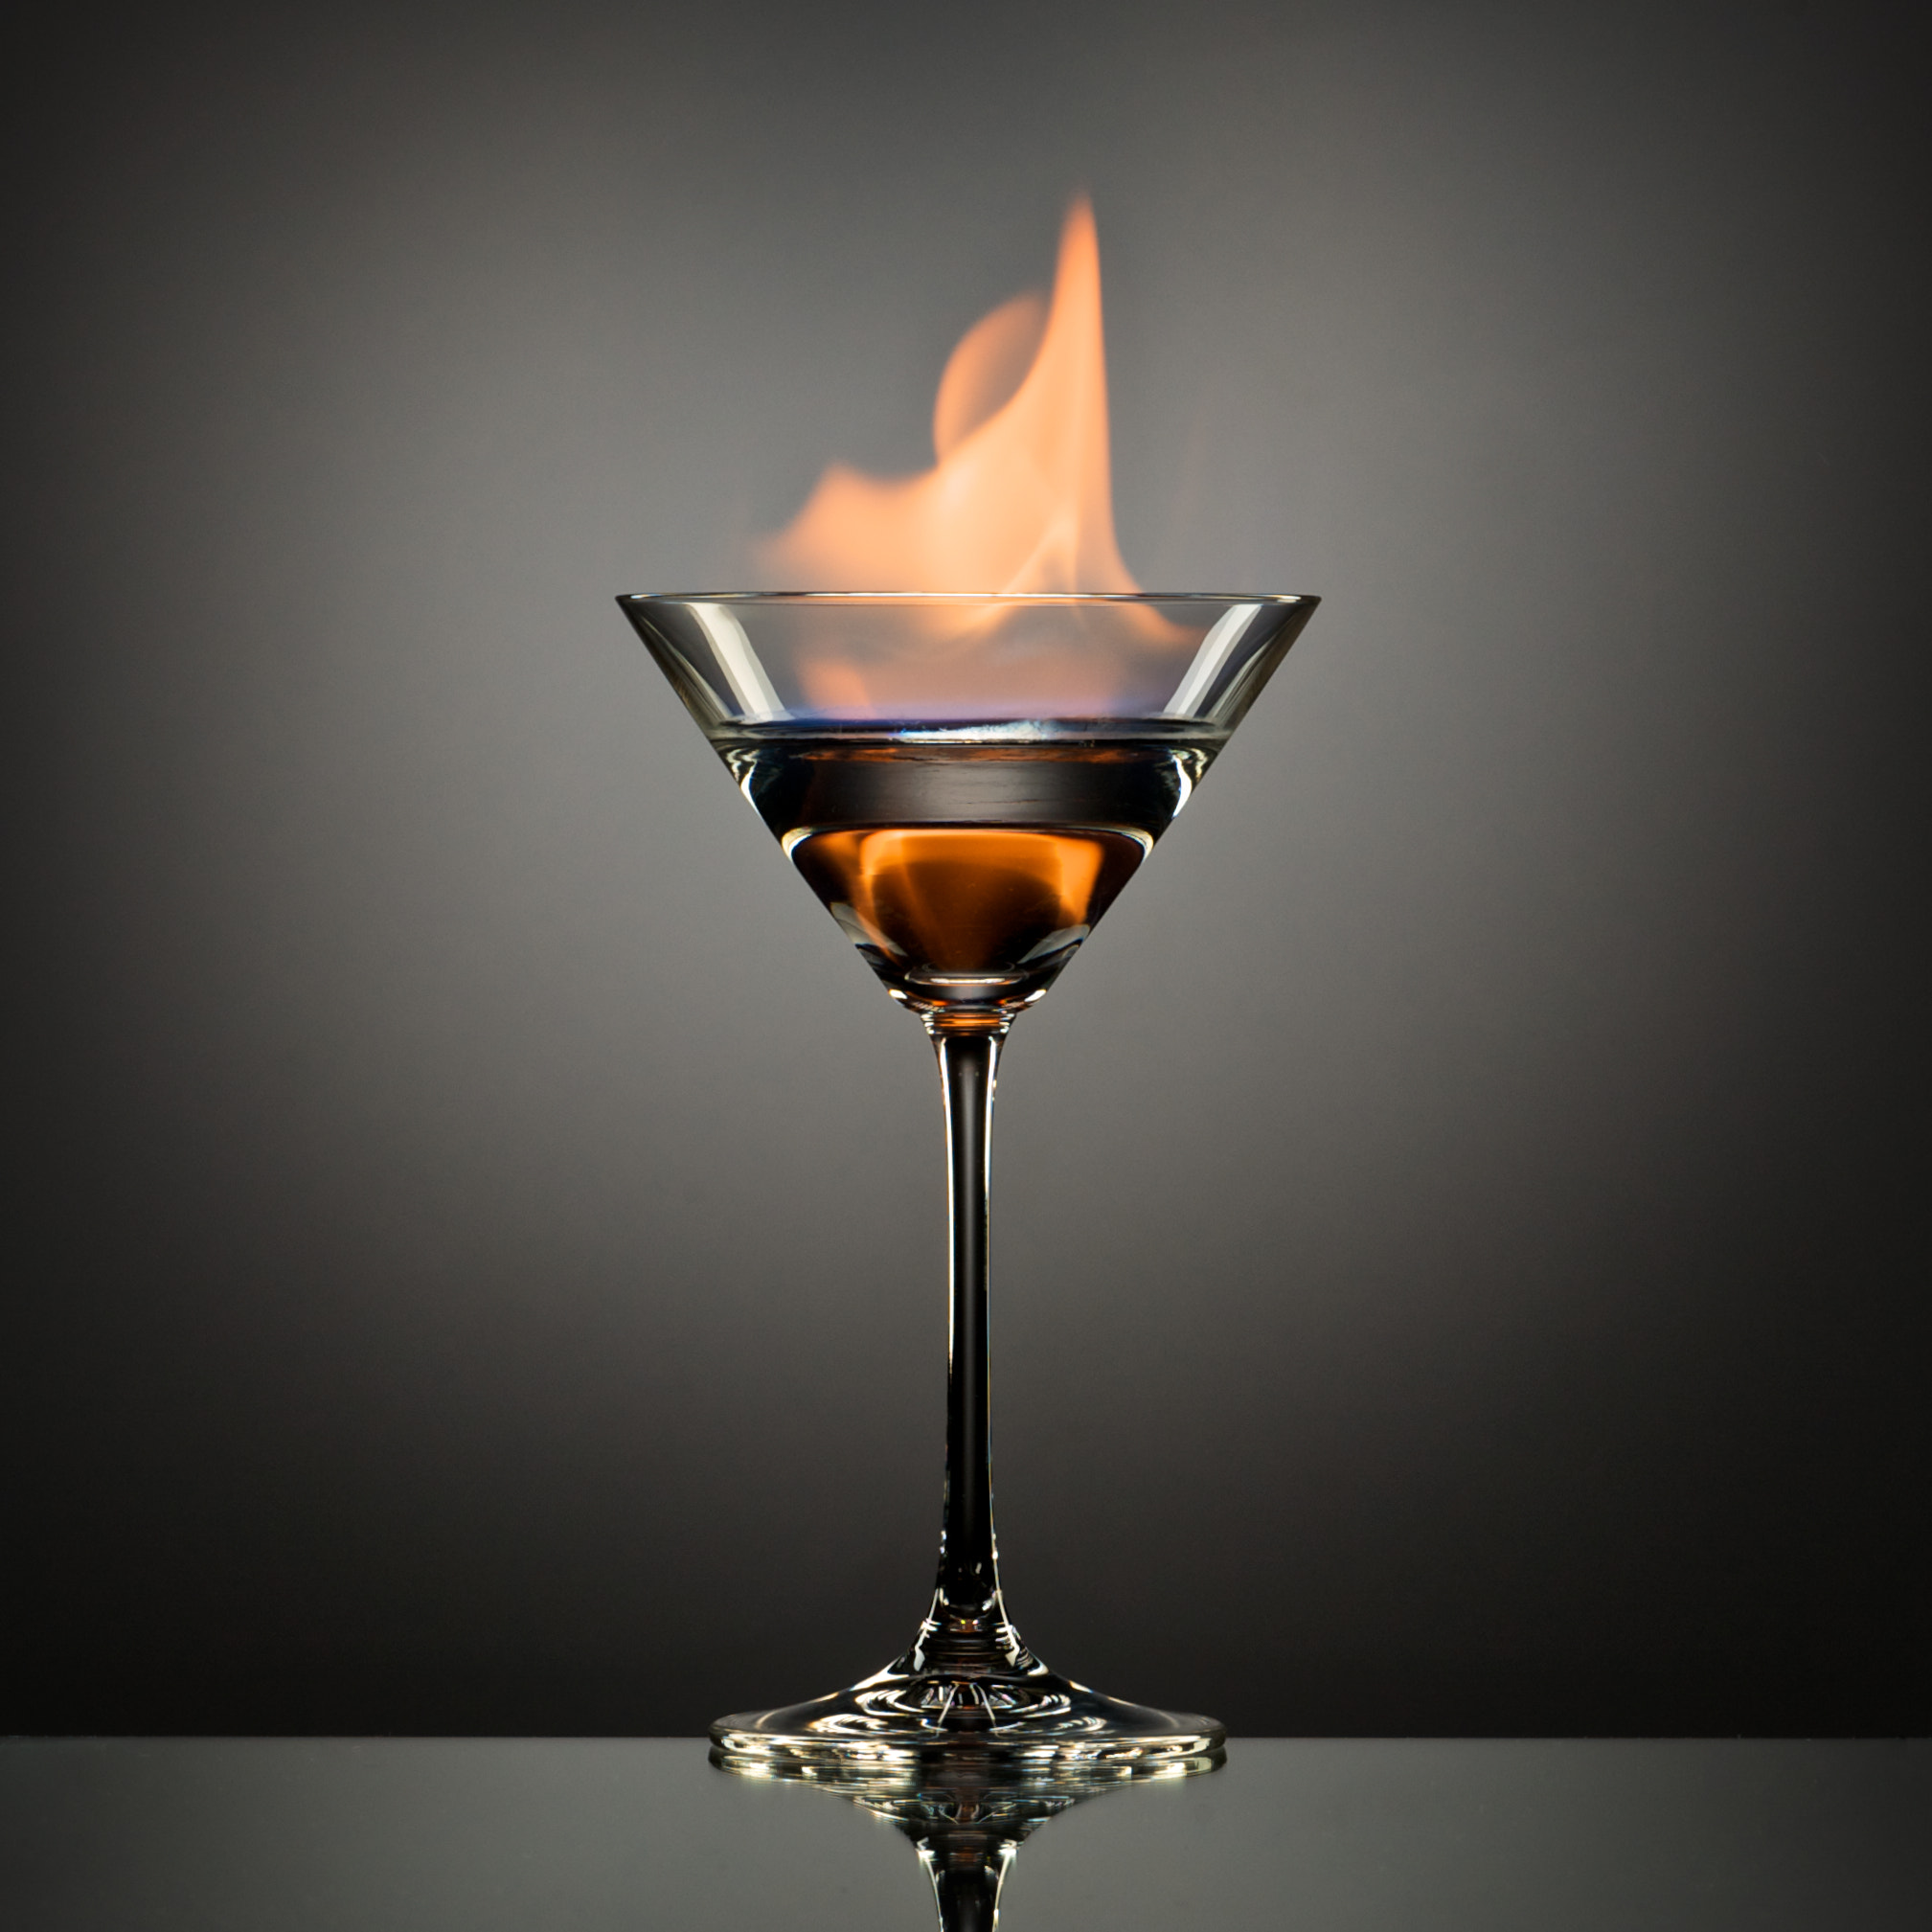 Photograph The Flaming Martini by Andrew Vernon on 500px